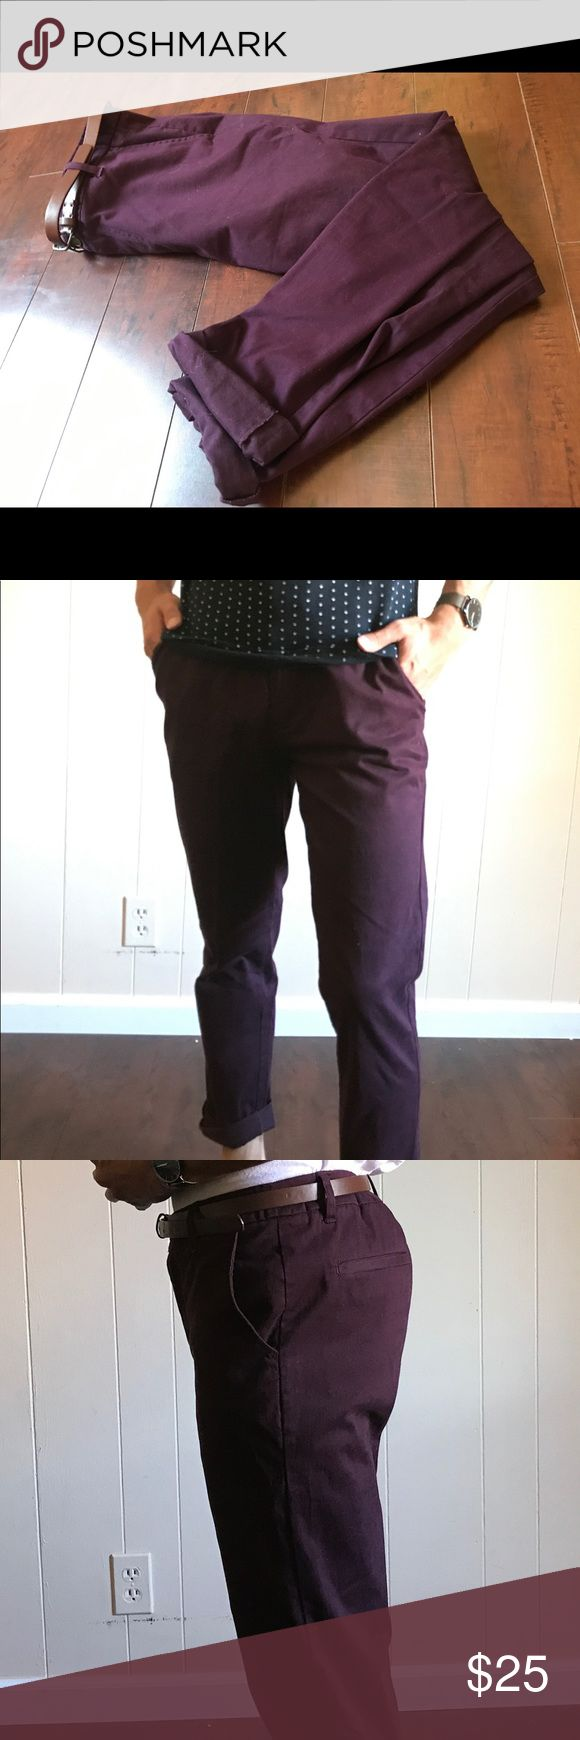 Burgundy chinos with bottoms cuffed with belt 21 men chinos. Good condition, worn them 1 and never liked them after. The bottom has a button that keeps them cuffed (rolled up look). Some what wrinkled. Dressy and comes with a brown slim belt. 21men Pants Chinos & Khakis